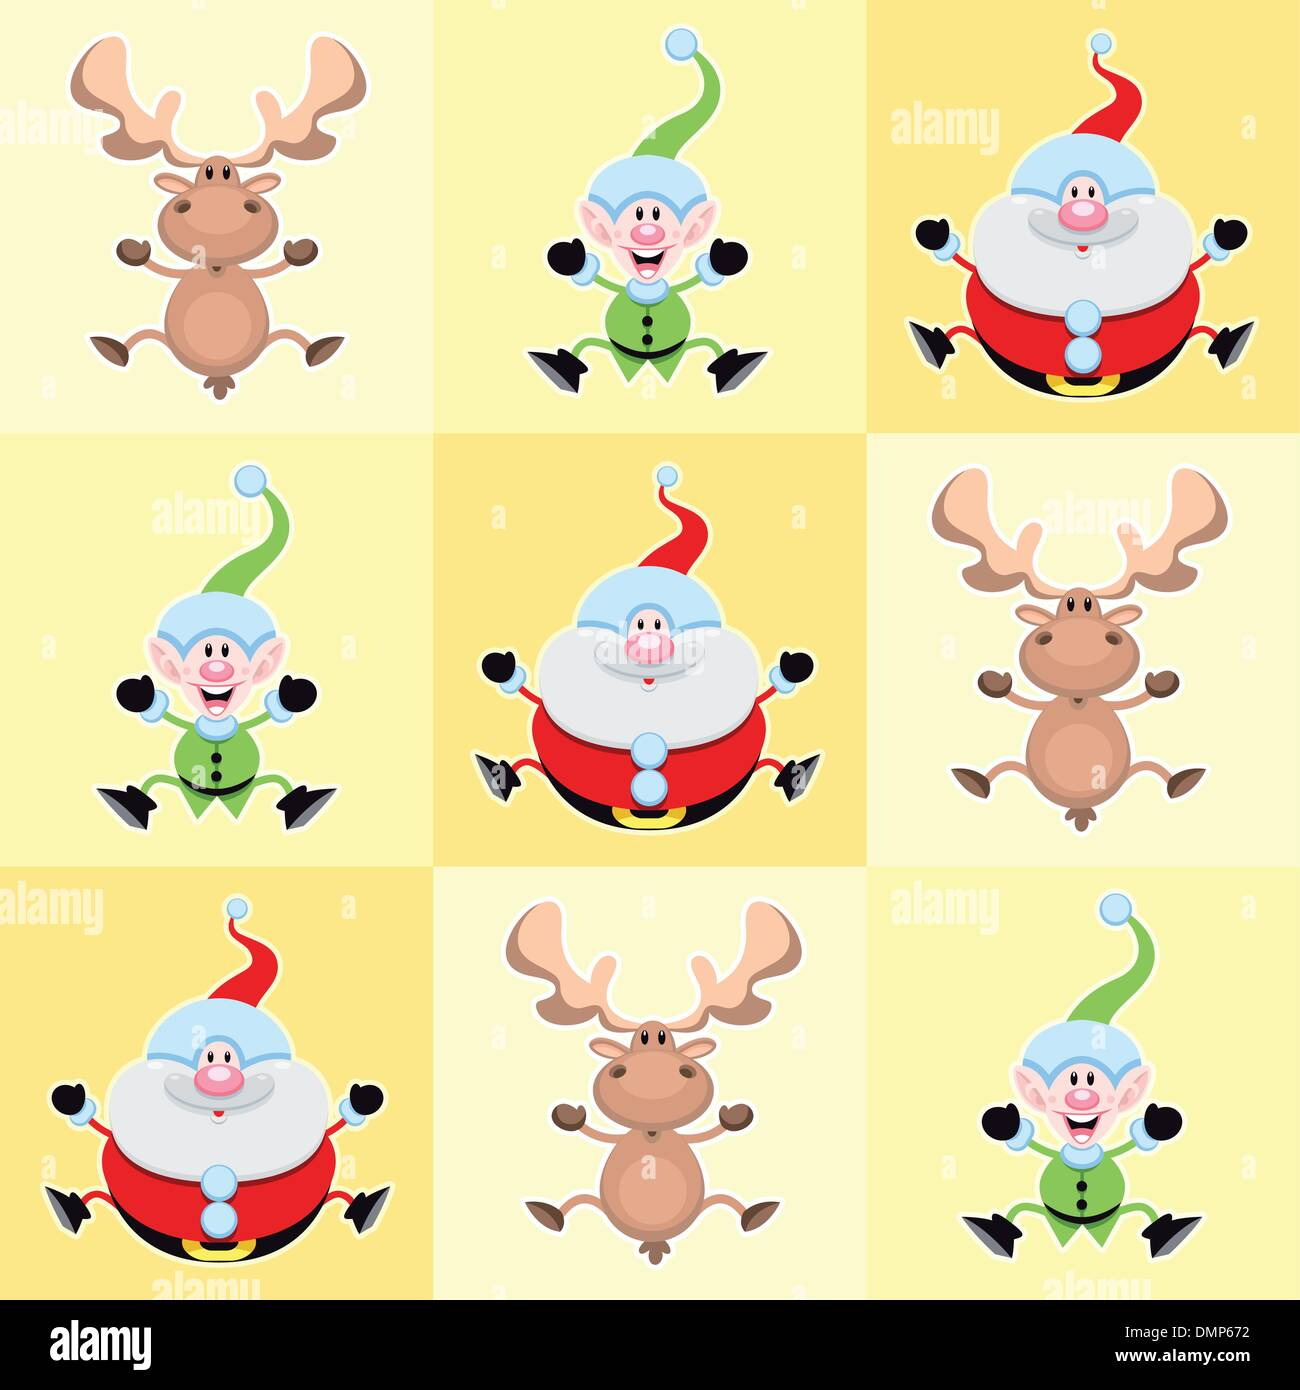 Christmas cartoon characters in yellow squares. - Stock Image